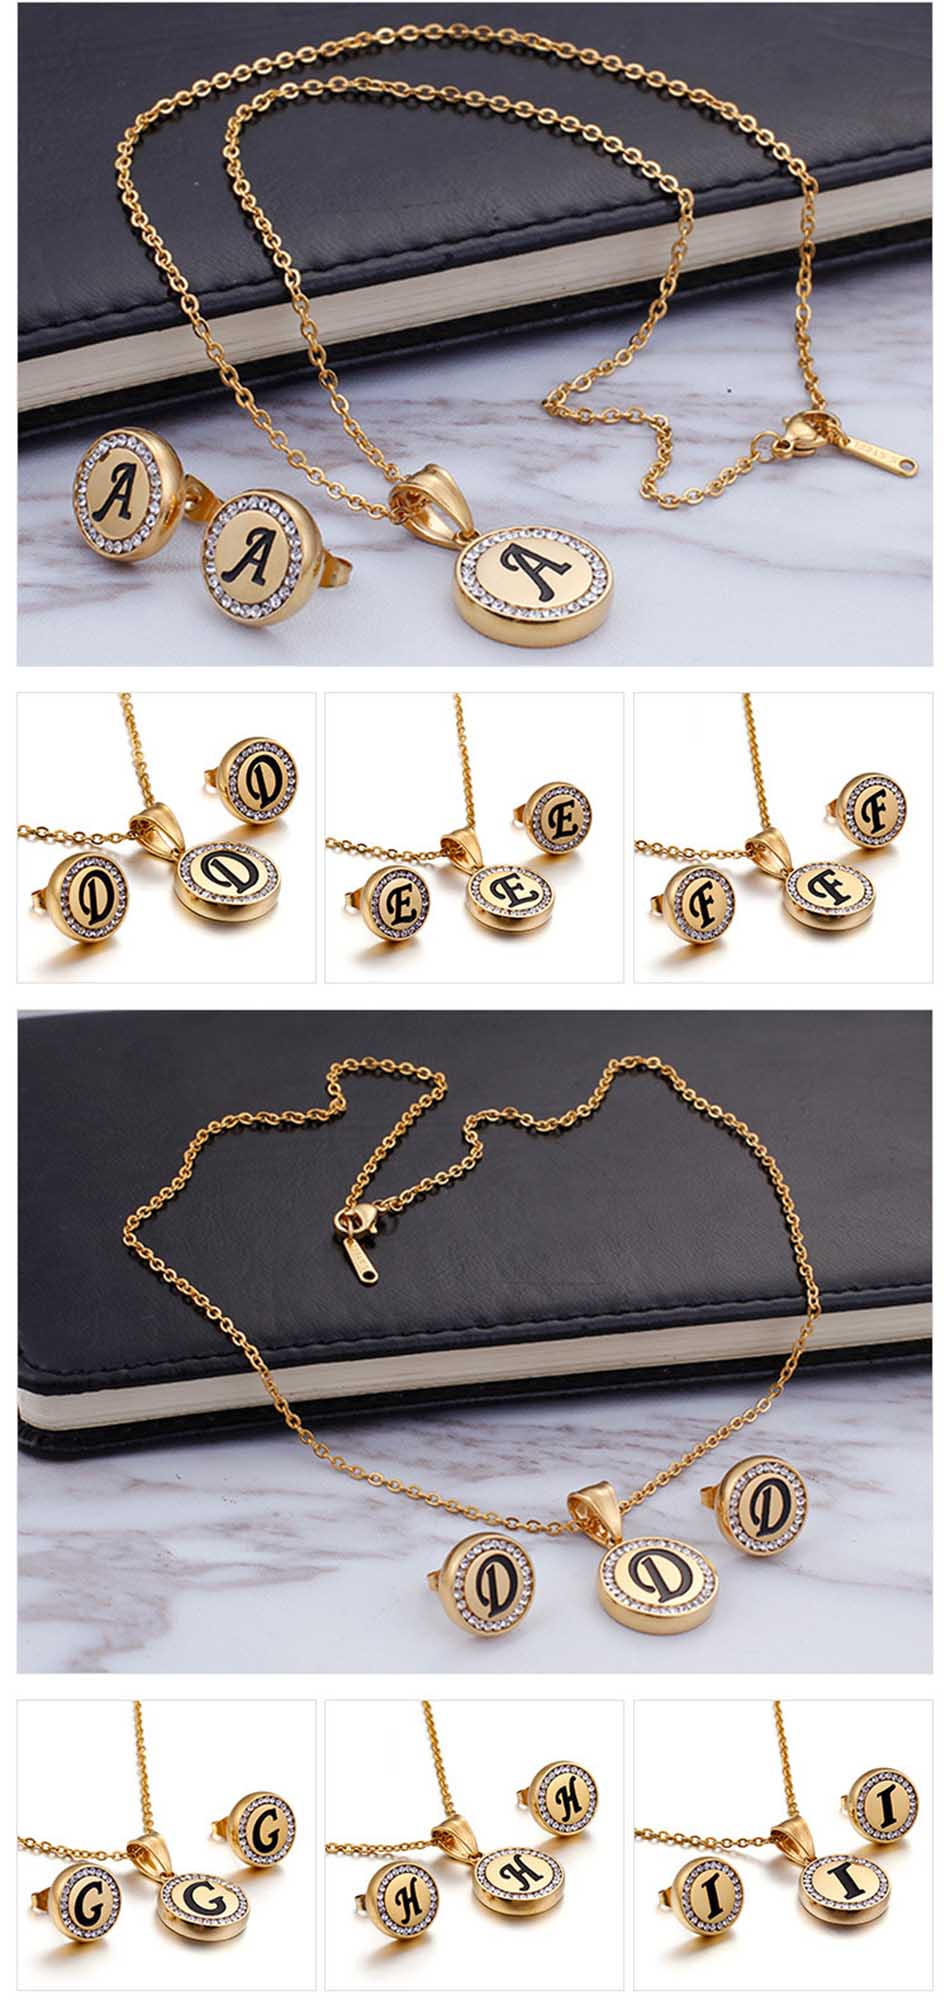 Stainless Steel Gold Color Alphabet Name Pendant Initial Necklace Chain Personalized Women Jewelry Accessories ZM6